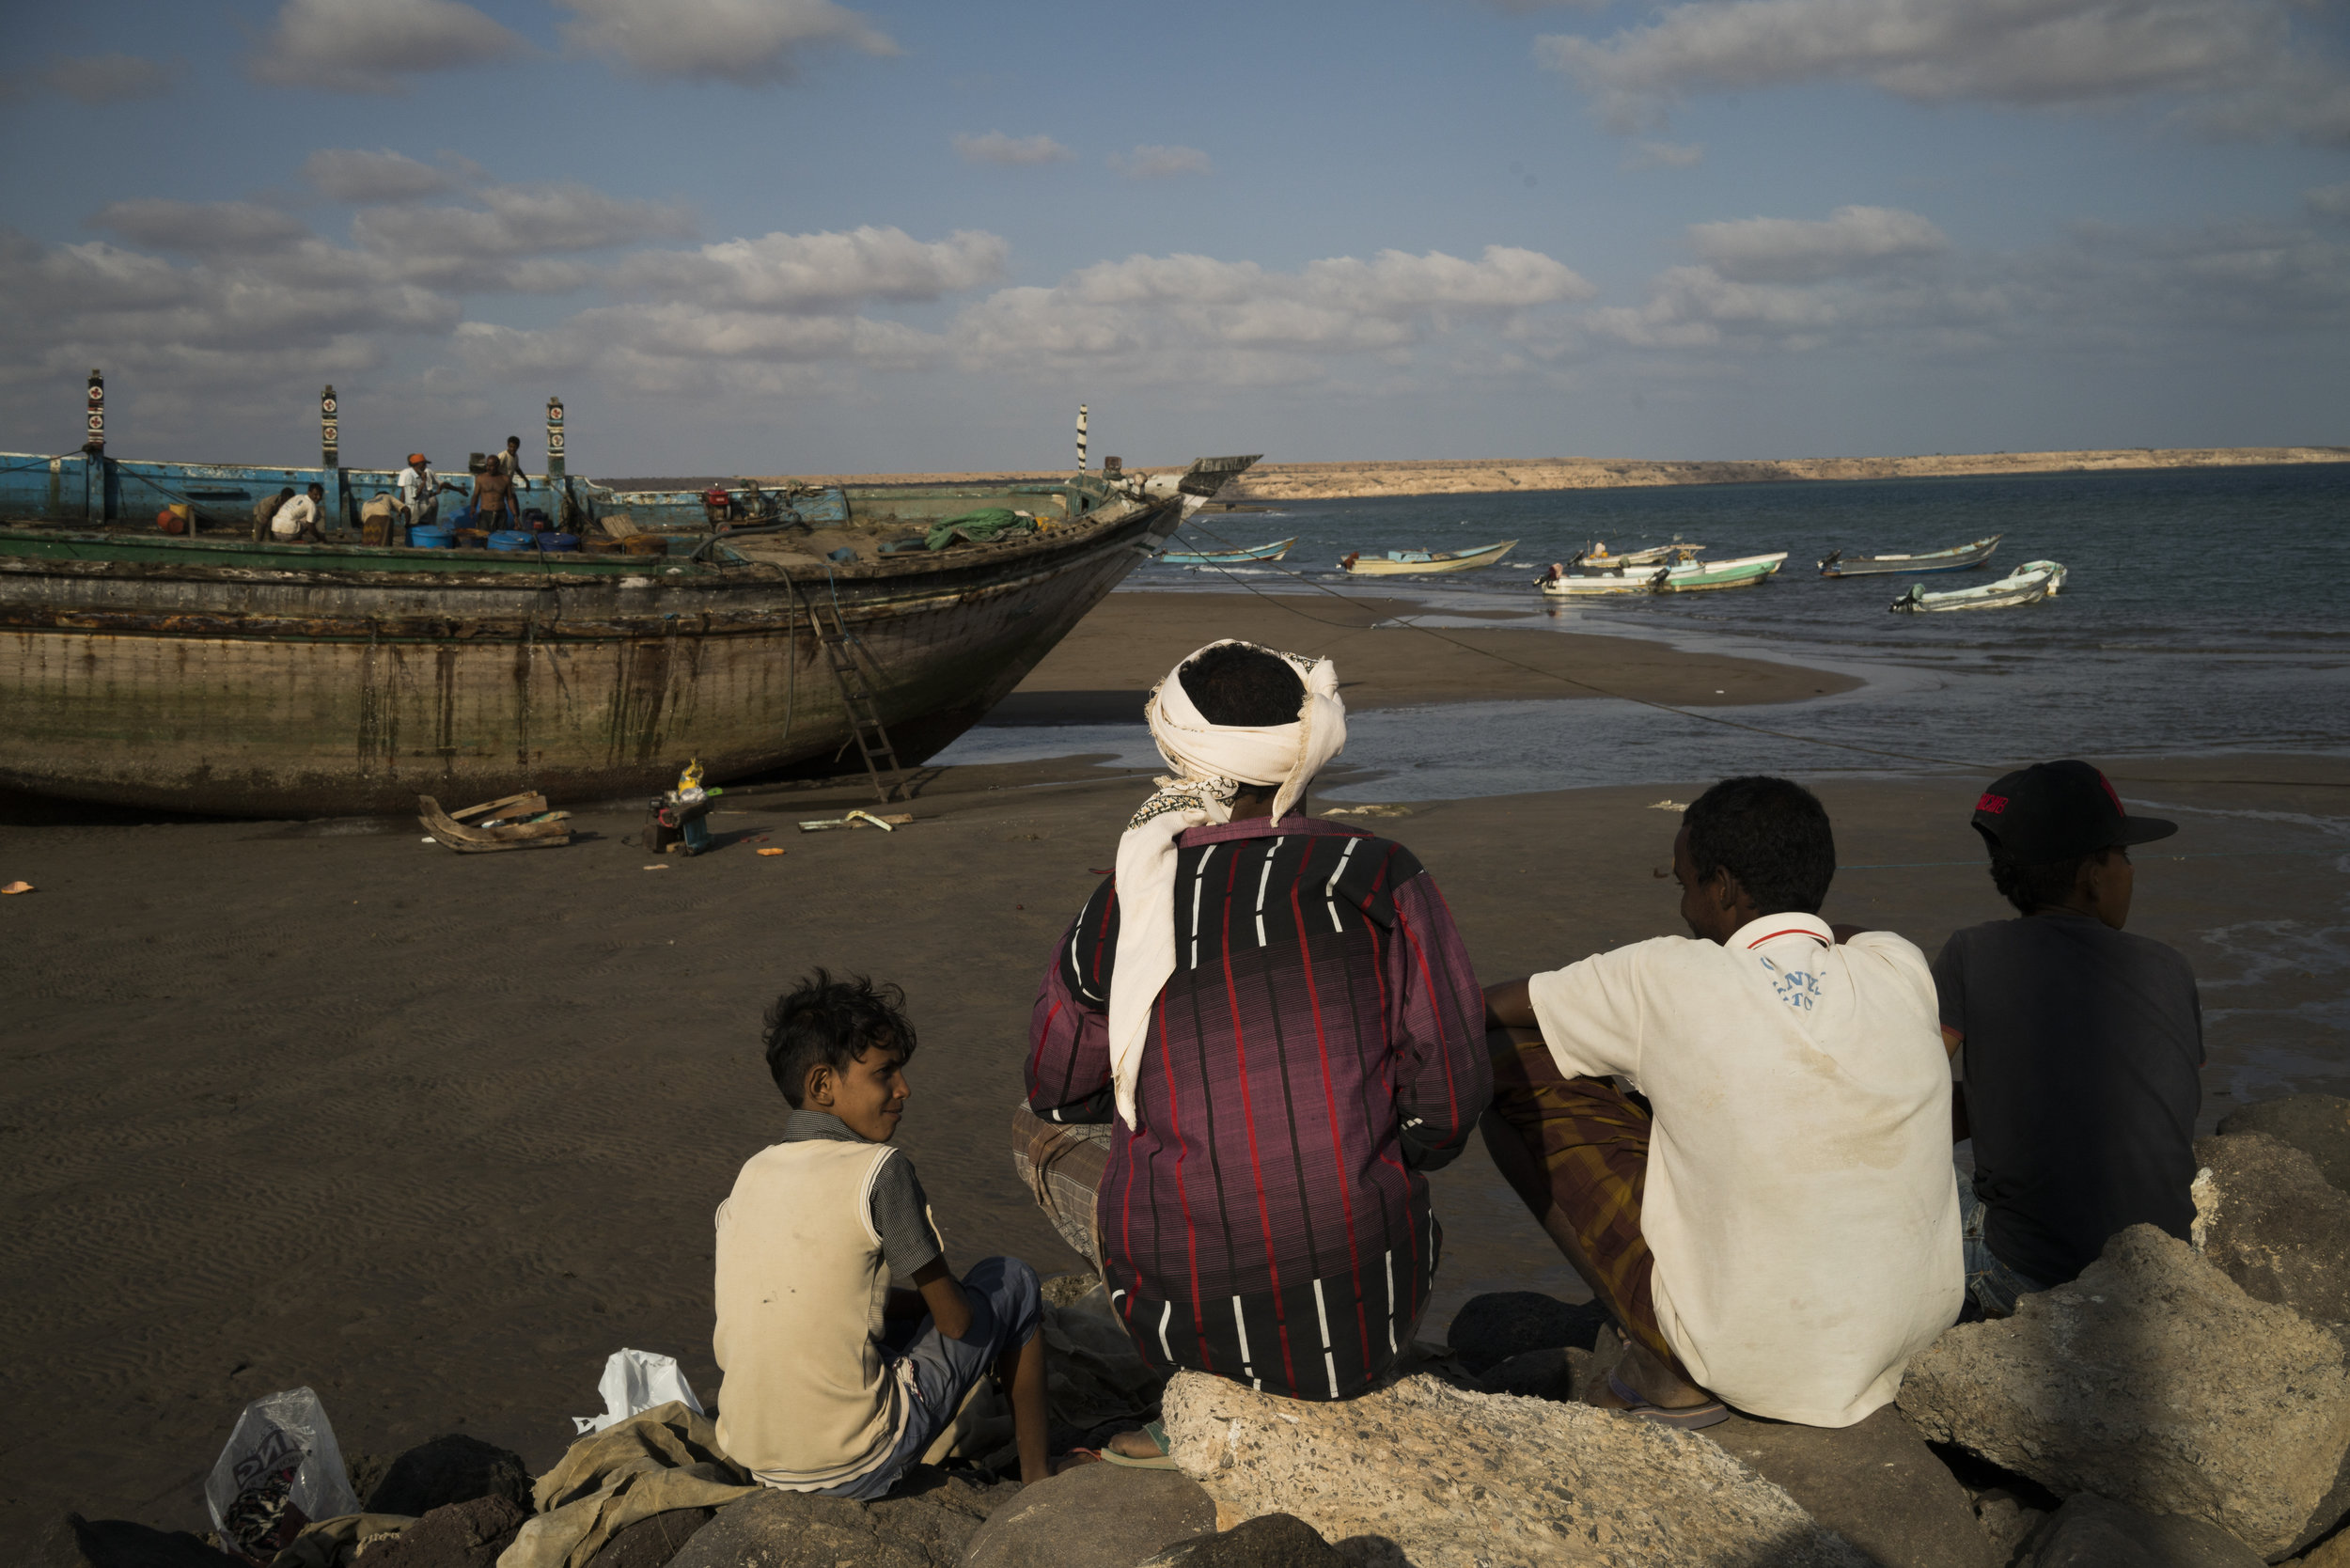 Men watch as a boat is repaired in the port in Obock, Djibouti, January 12, 2016. Located just across the sea from Yemen Obock receives refugees fleeing the war, and at the time sends desperate migrants by boat in the opposite direction en route to Saudi Arabia.